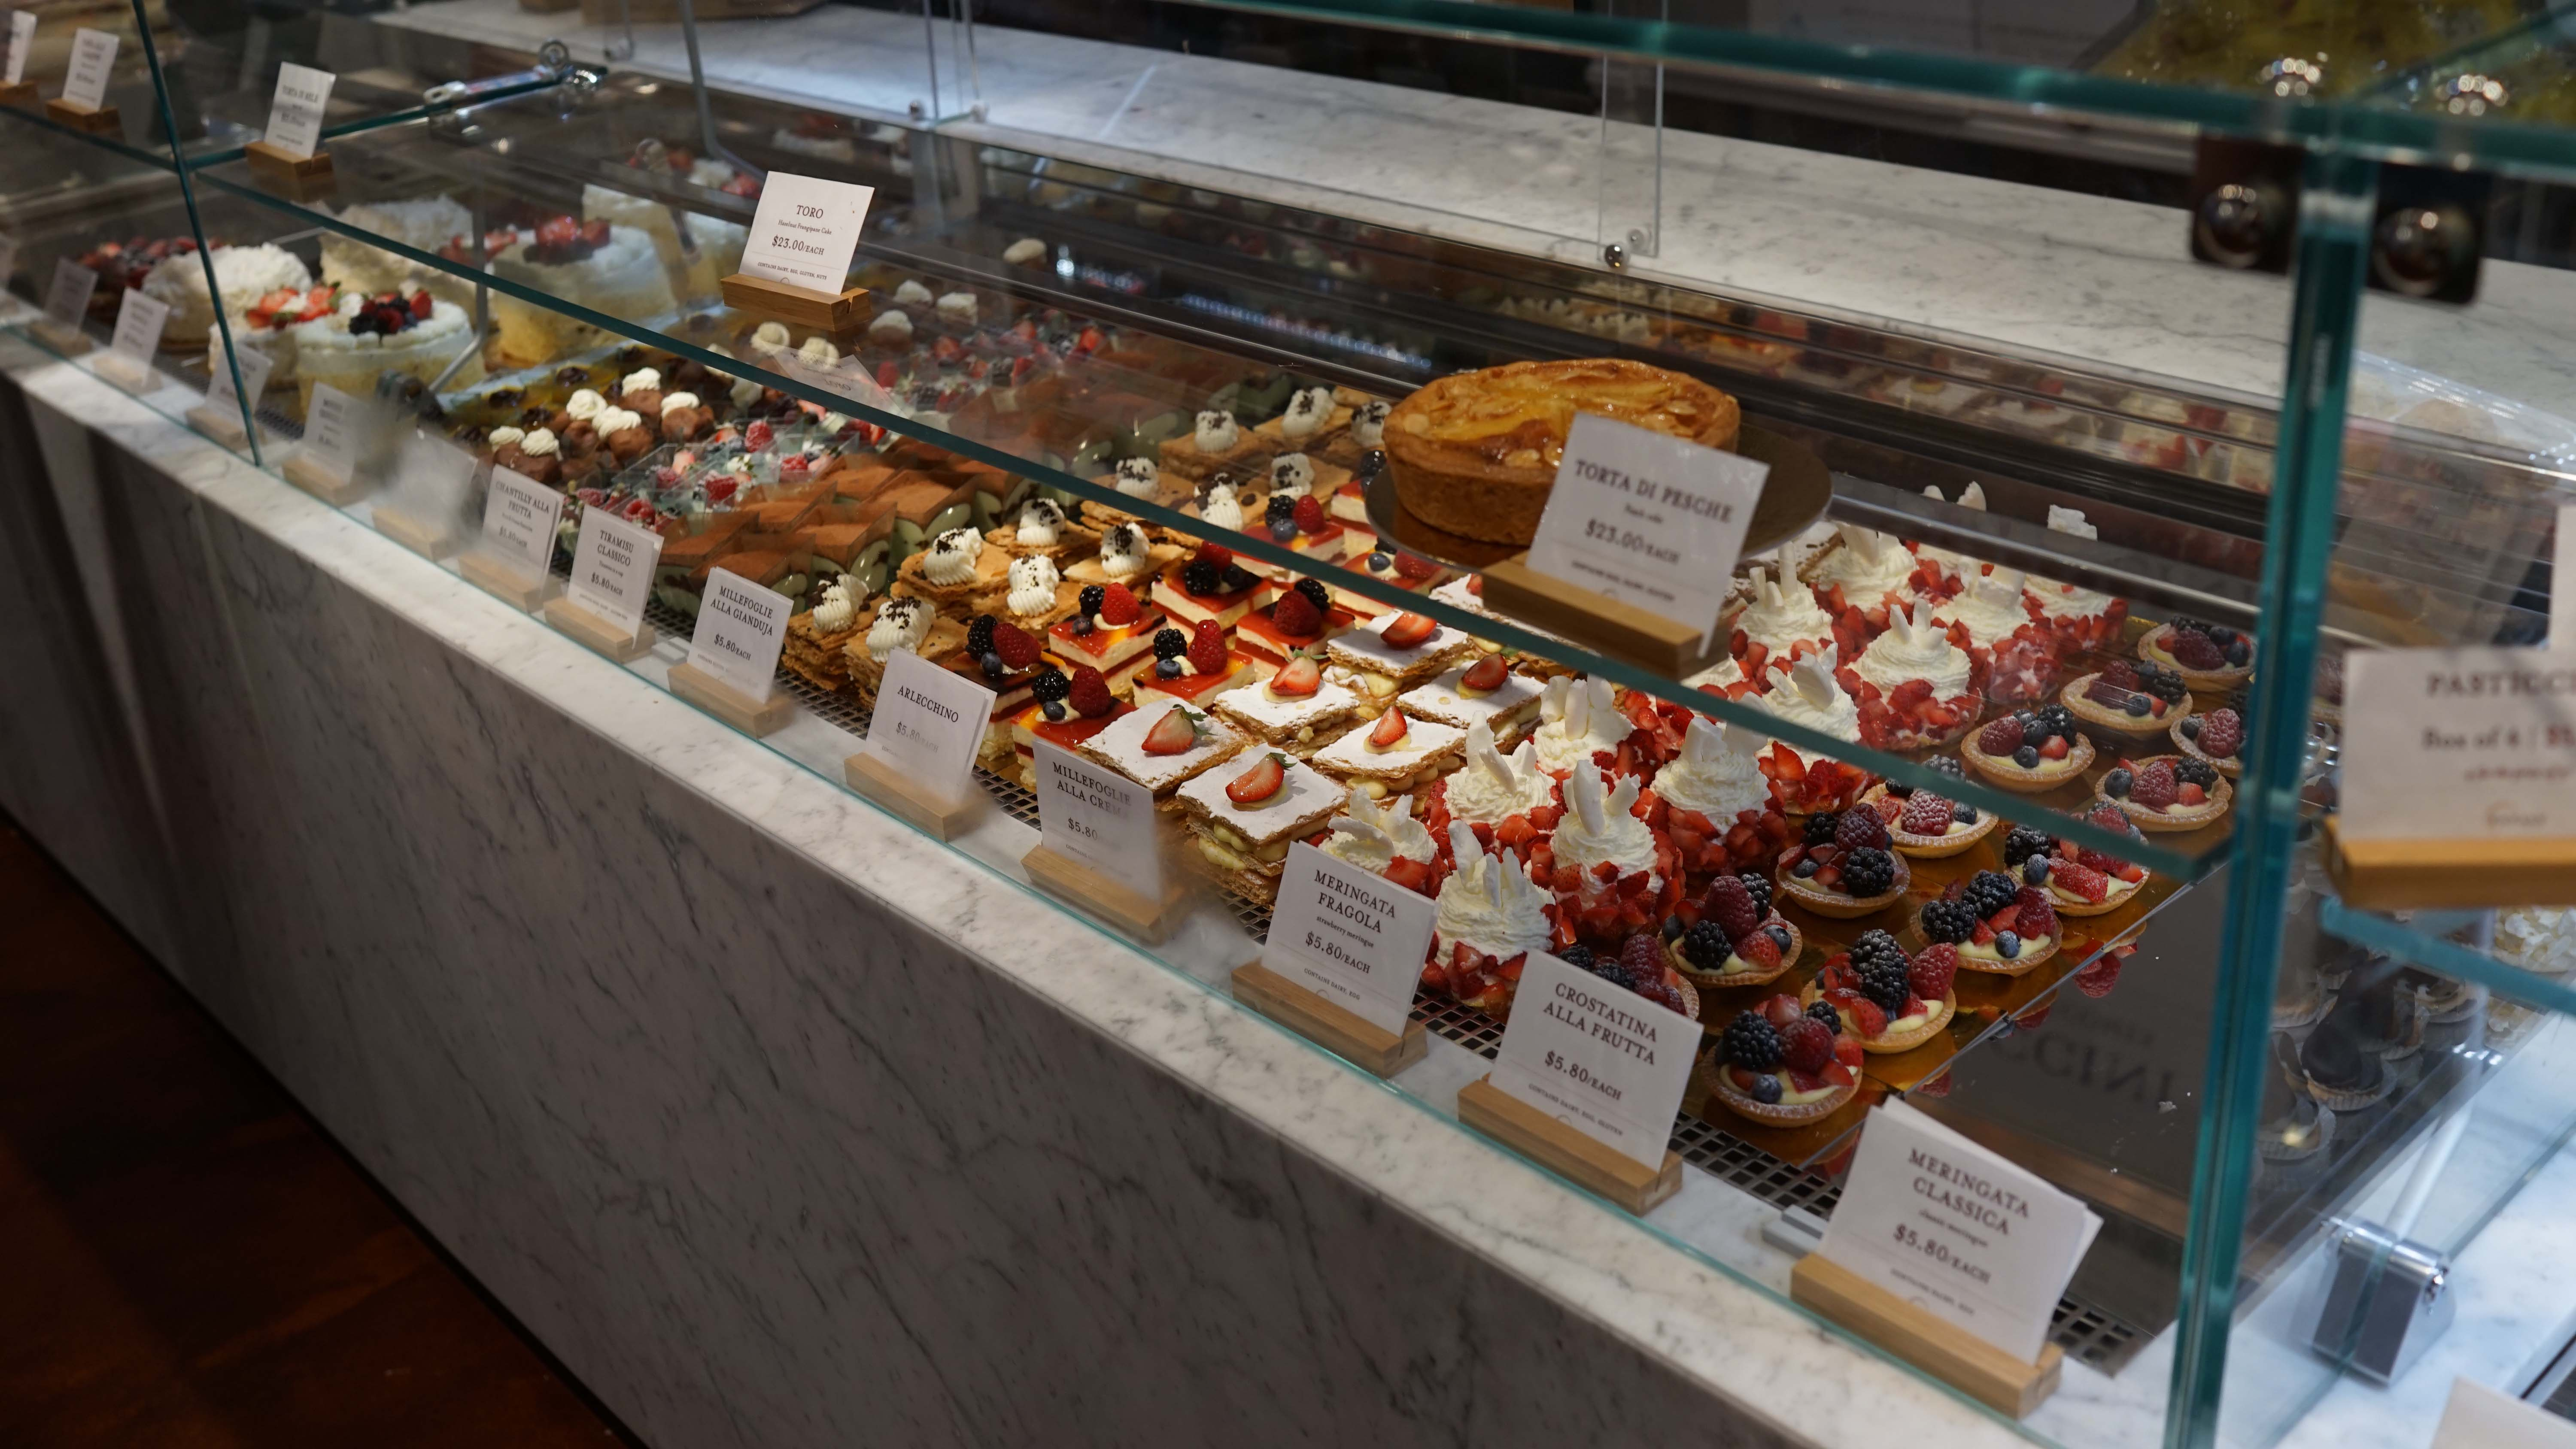 Eataly pastry